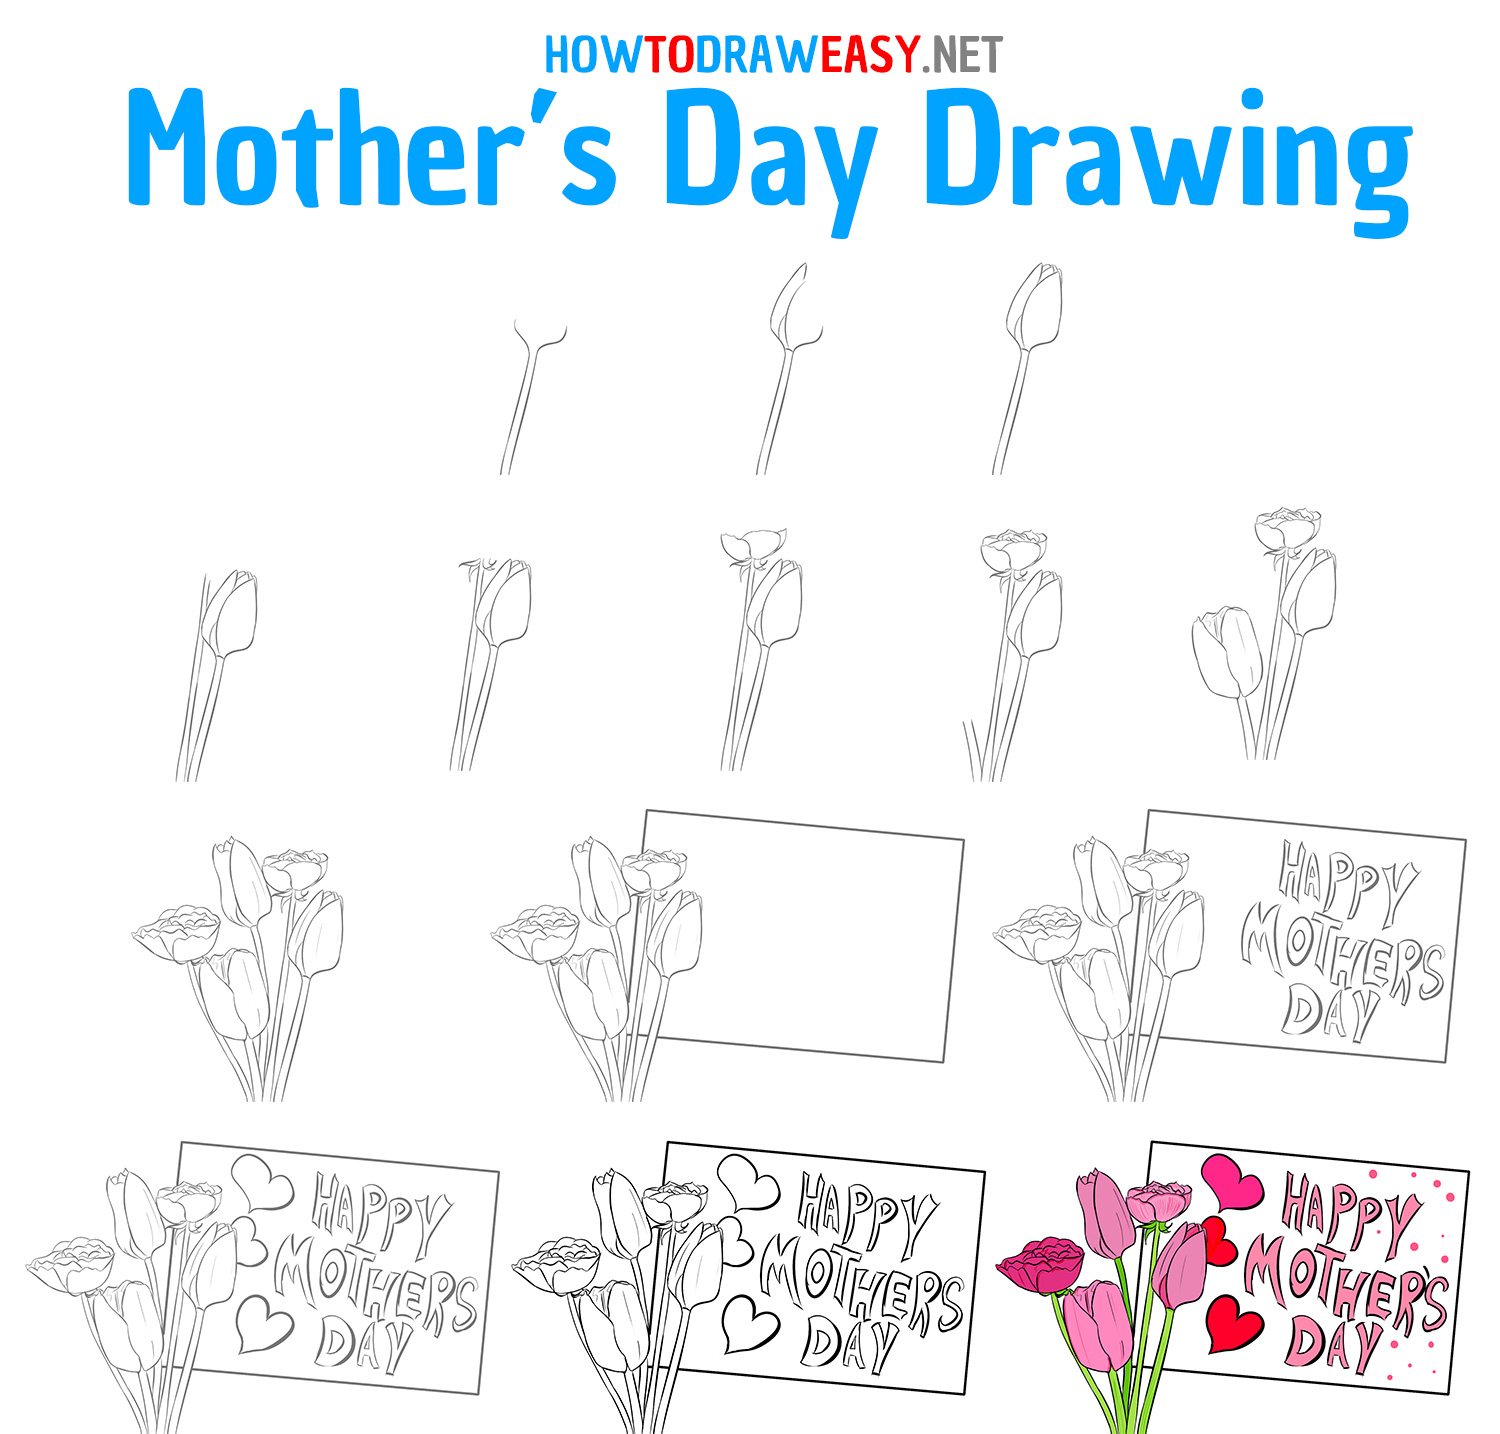 Mothers Day Drawing Step by Step